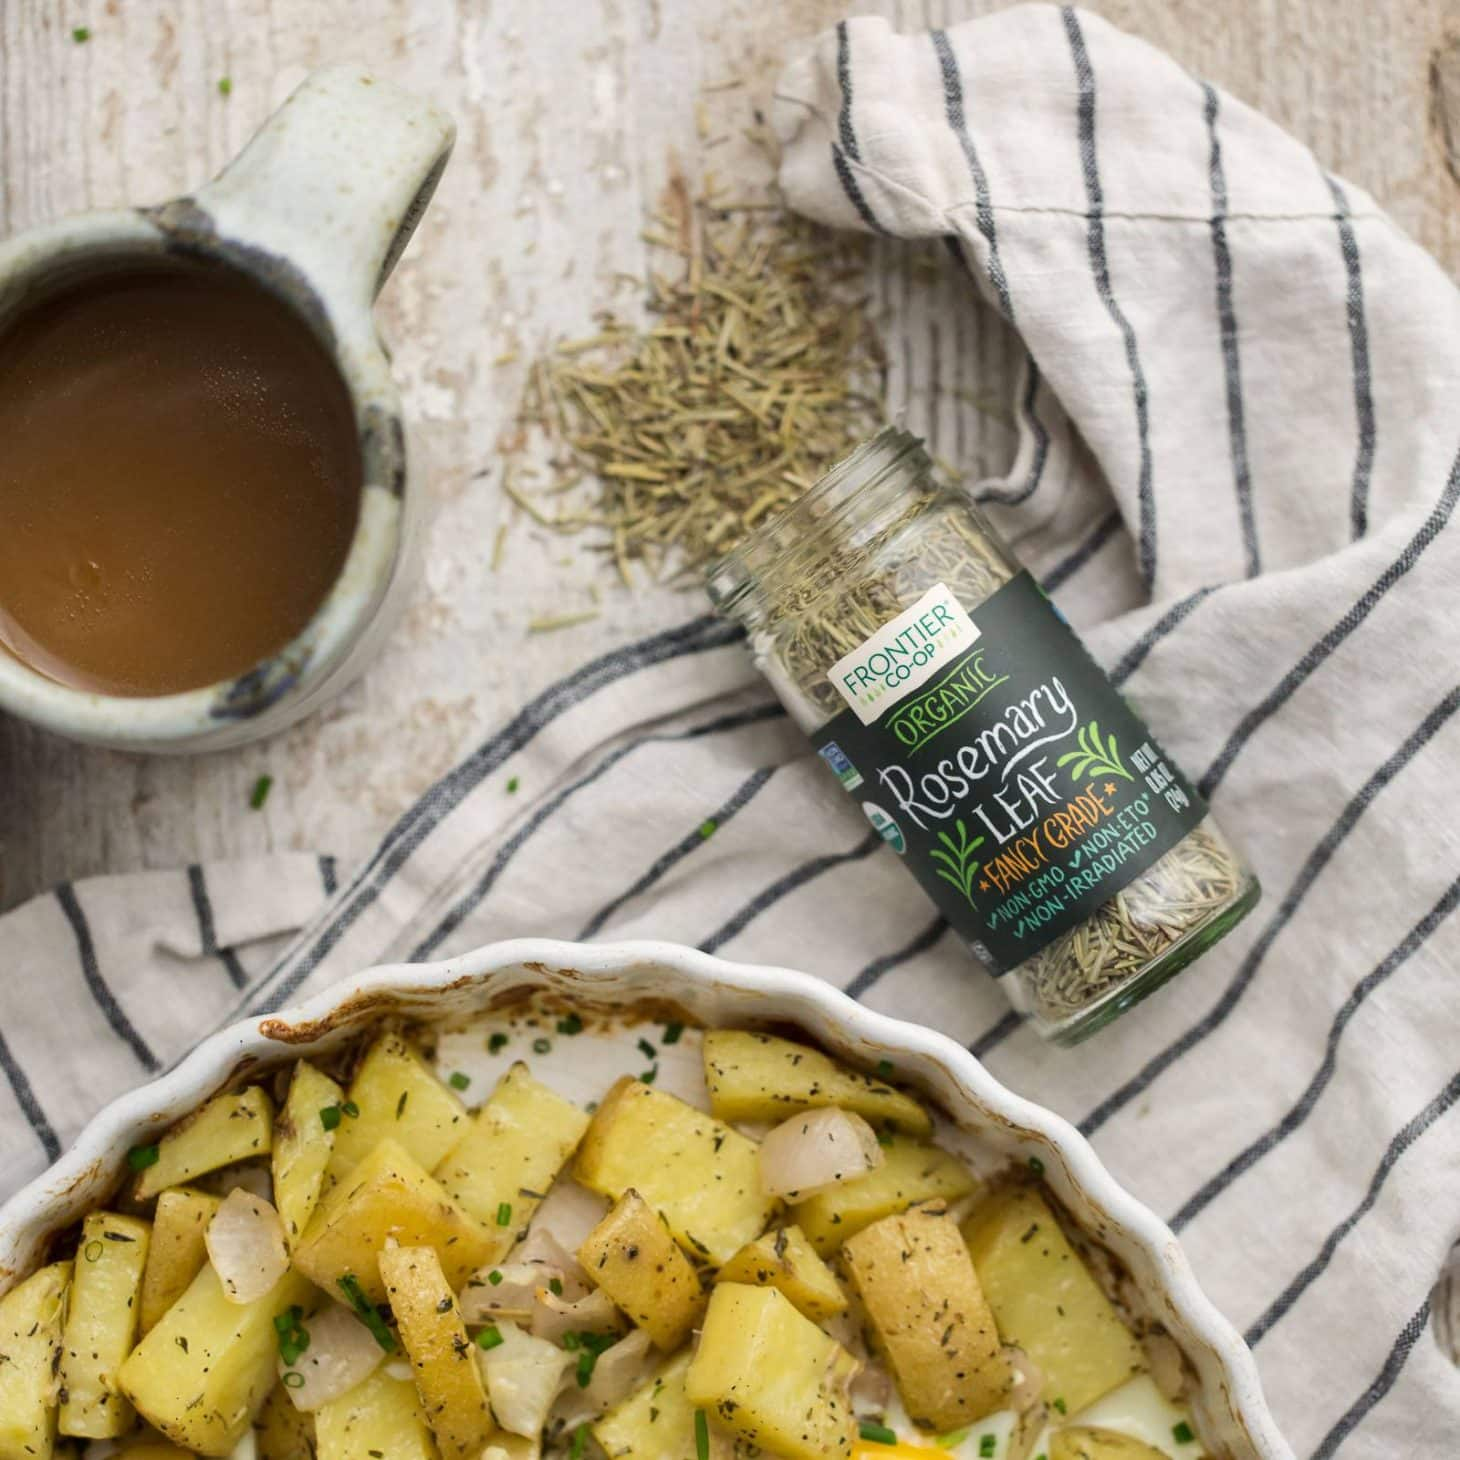 Rosemary Potato Egg Bake featuring Frontier Co-op Rosemary | @ ...